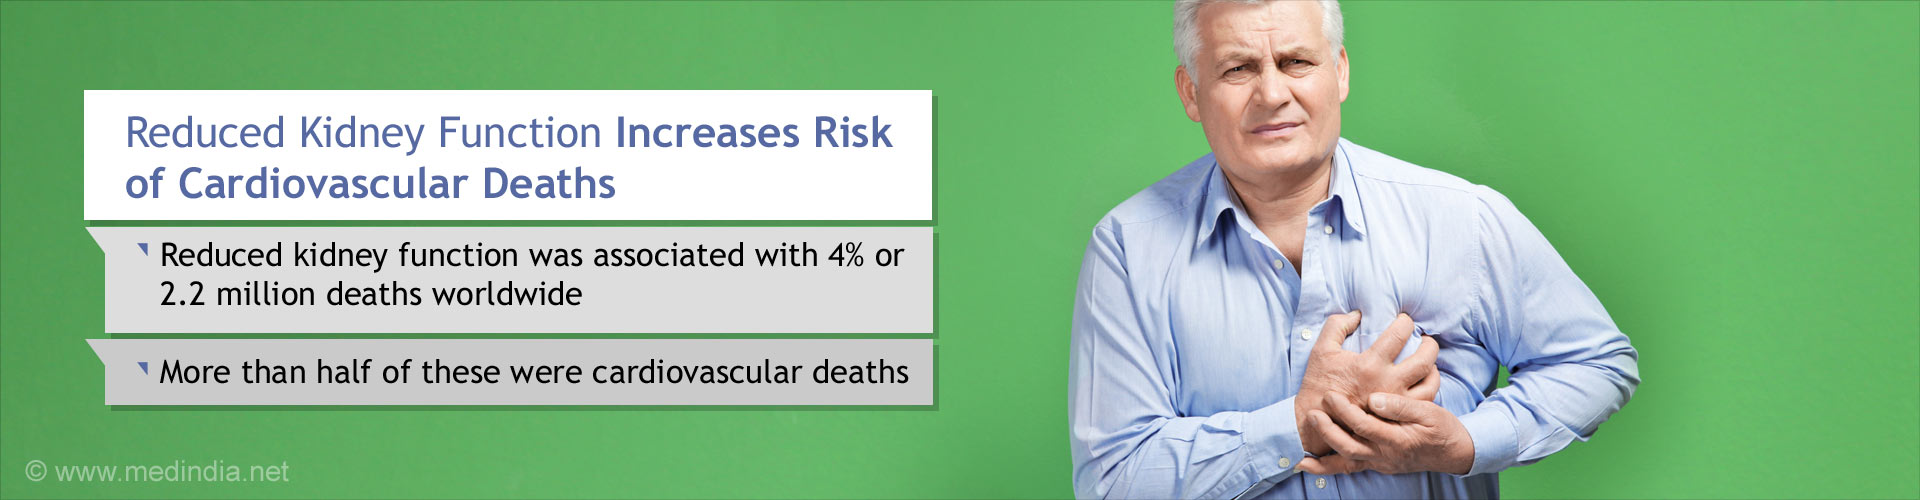 Kidney Diseases Increase Risk of Cardiovascular Deaths